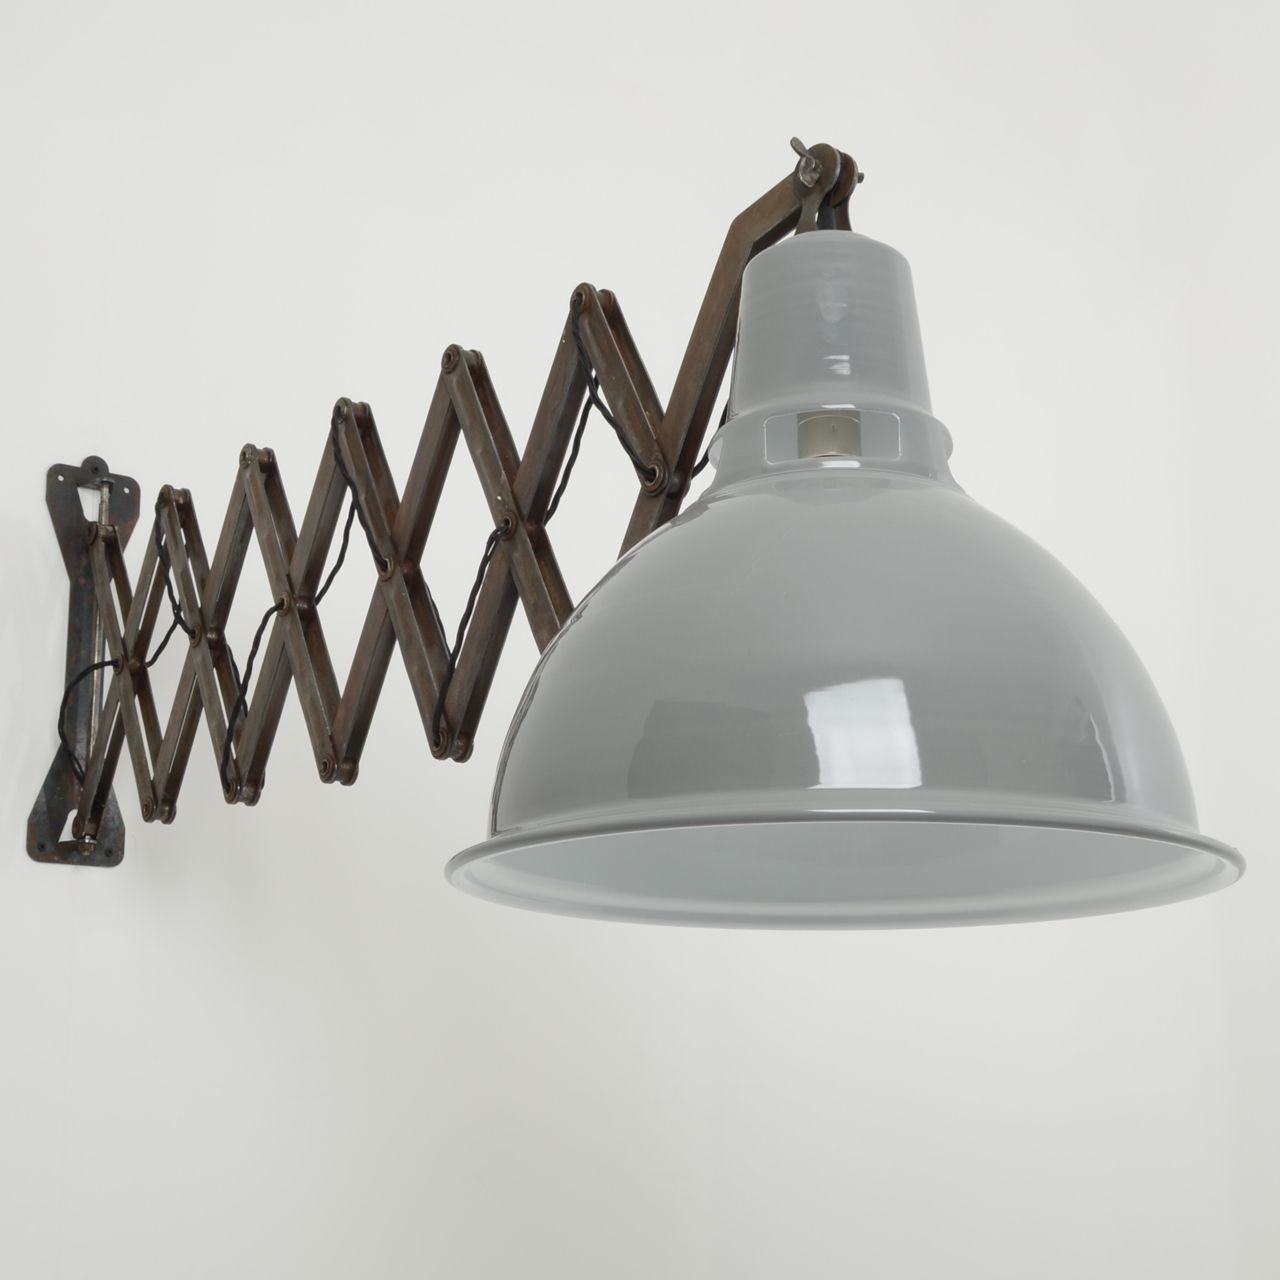 Wall Lights Extendable : Trainspotters.co.uk Large extendable scissor wall lights. #industrial #lighting Industrial ...